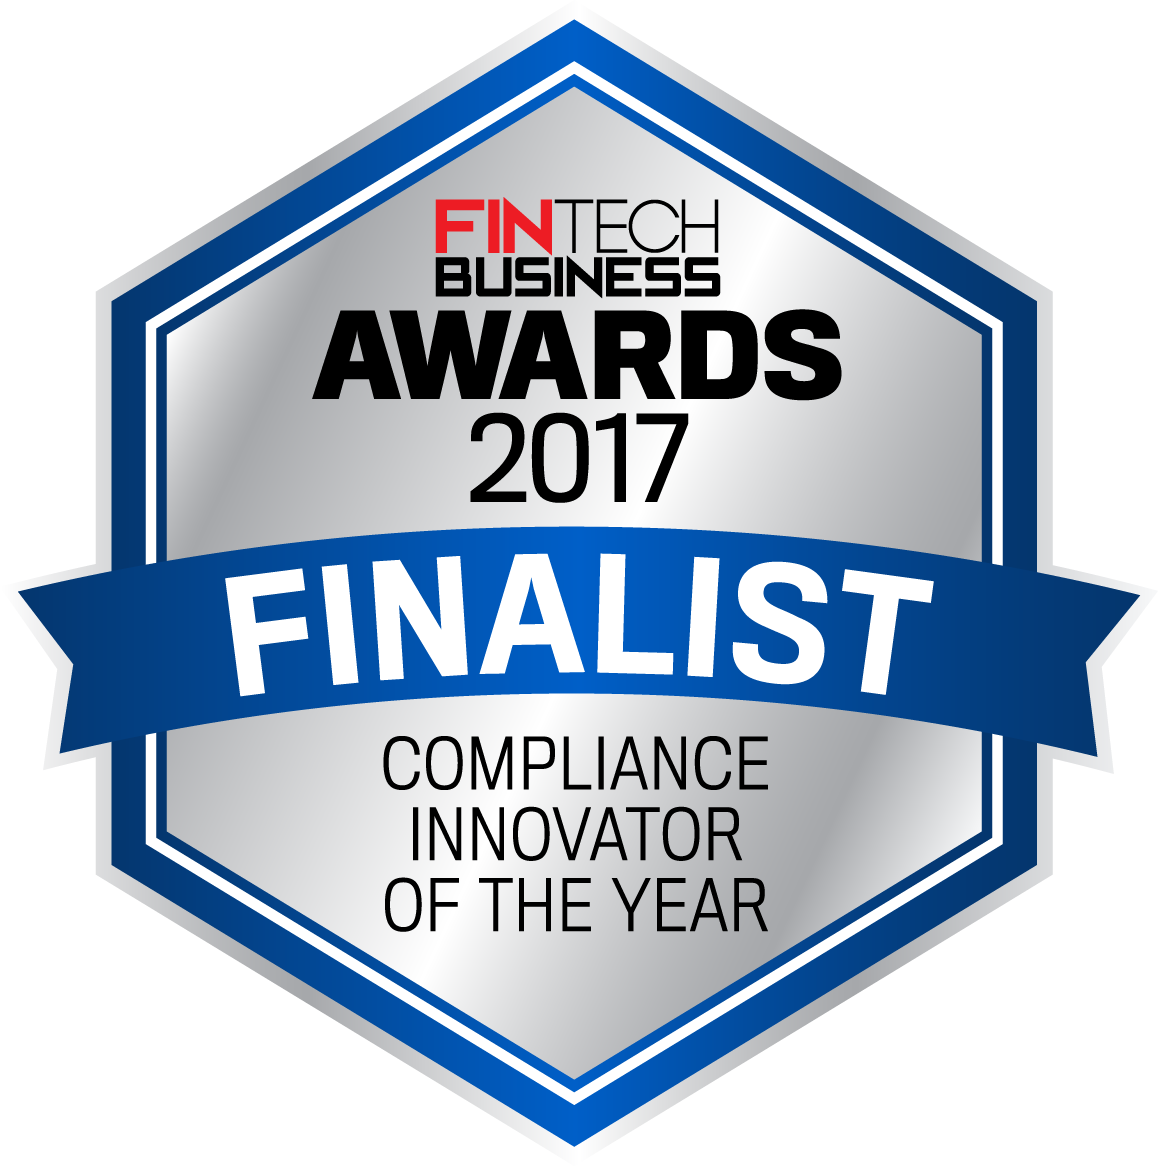 OpenAFSL eases the compliance burden  .  It's agile regulatory technology that's secure, intuitive and flexible.